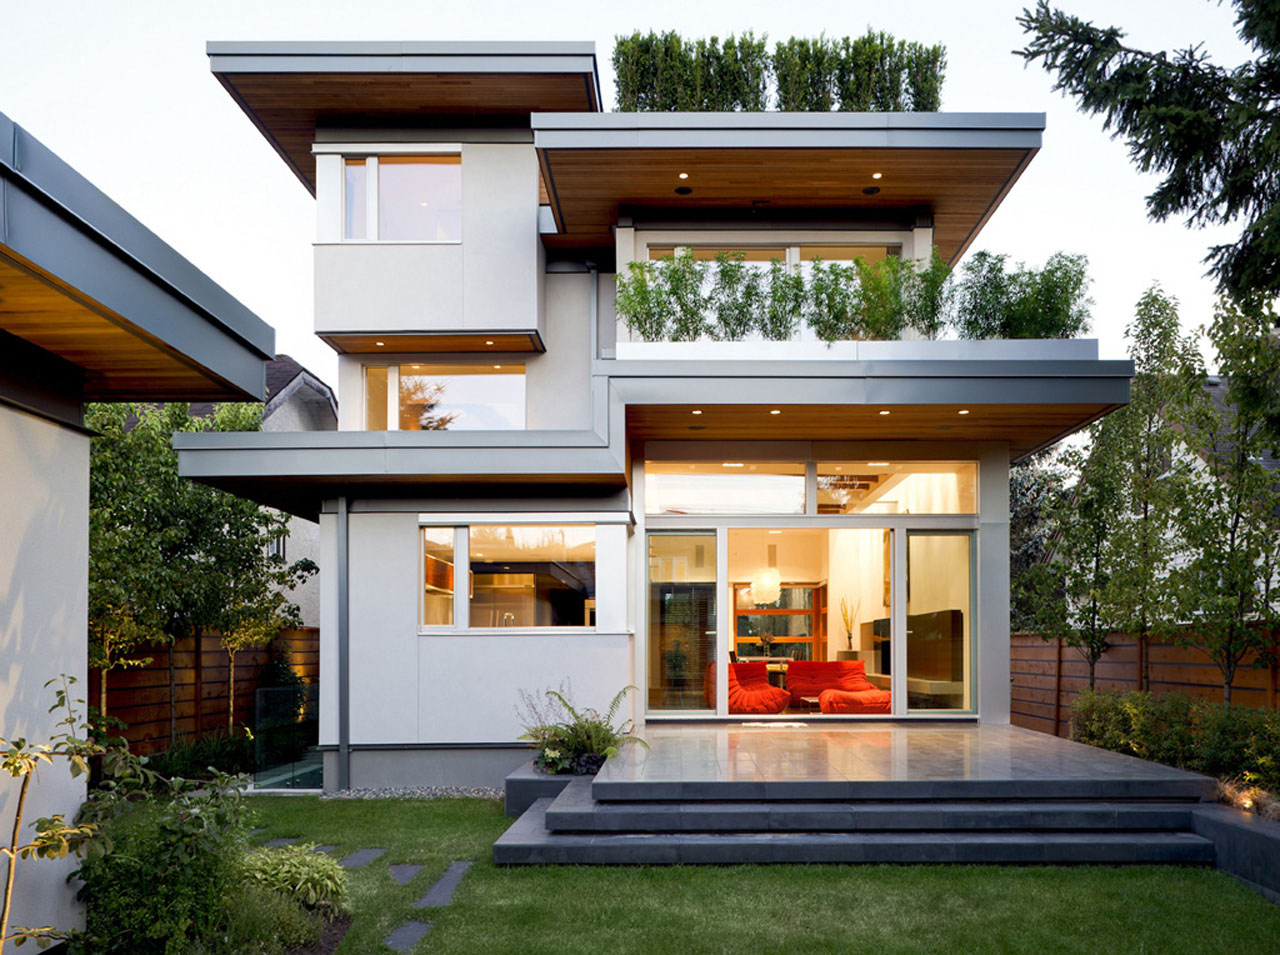 Sustainable Home Design In Vancouver | iDesignArch | Interior Design ...